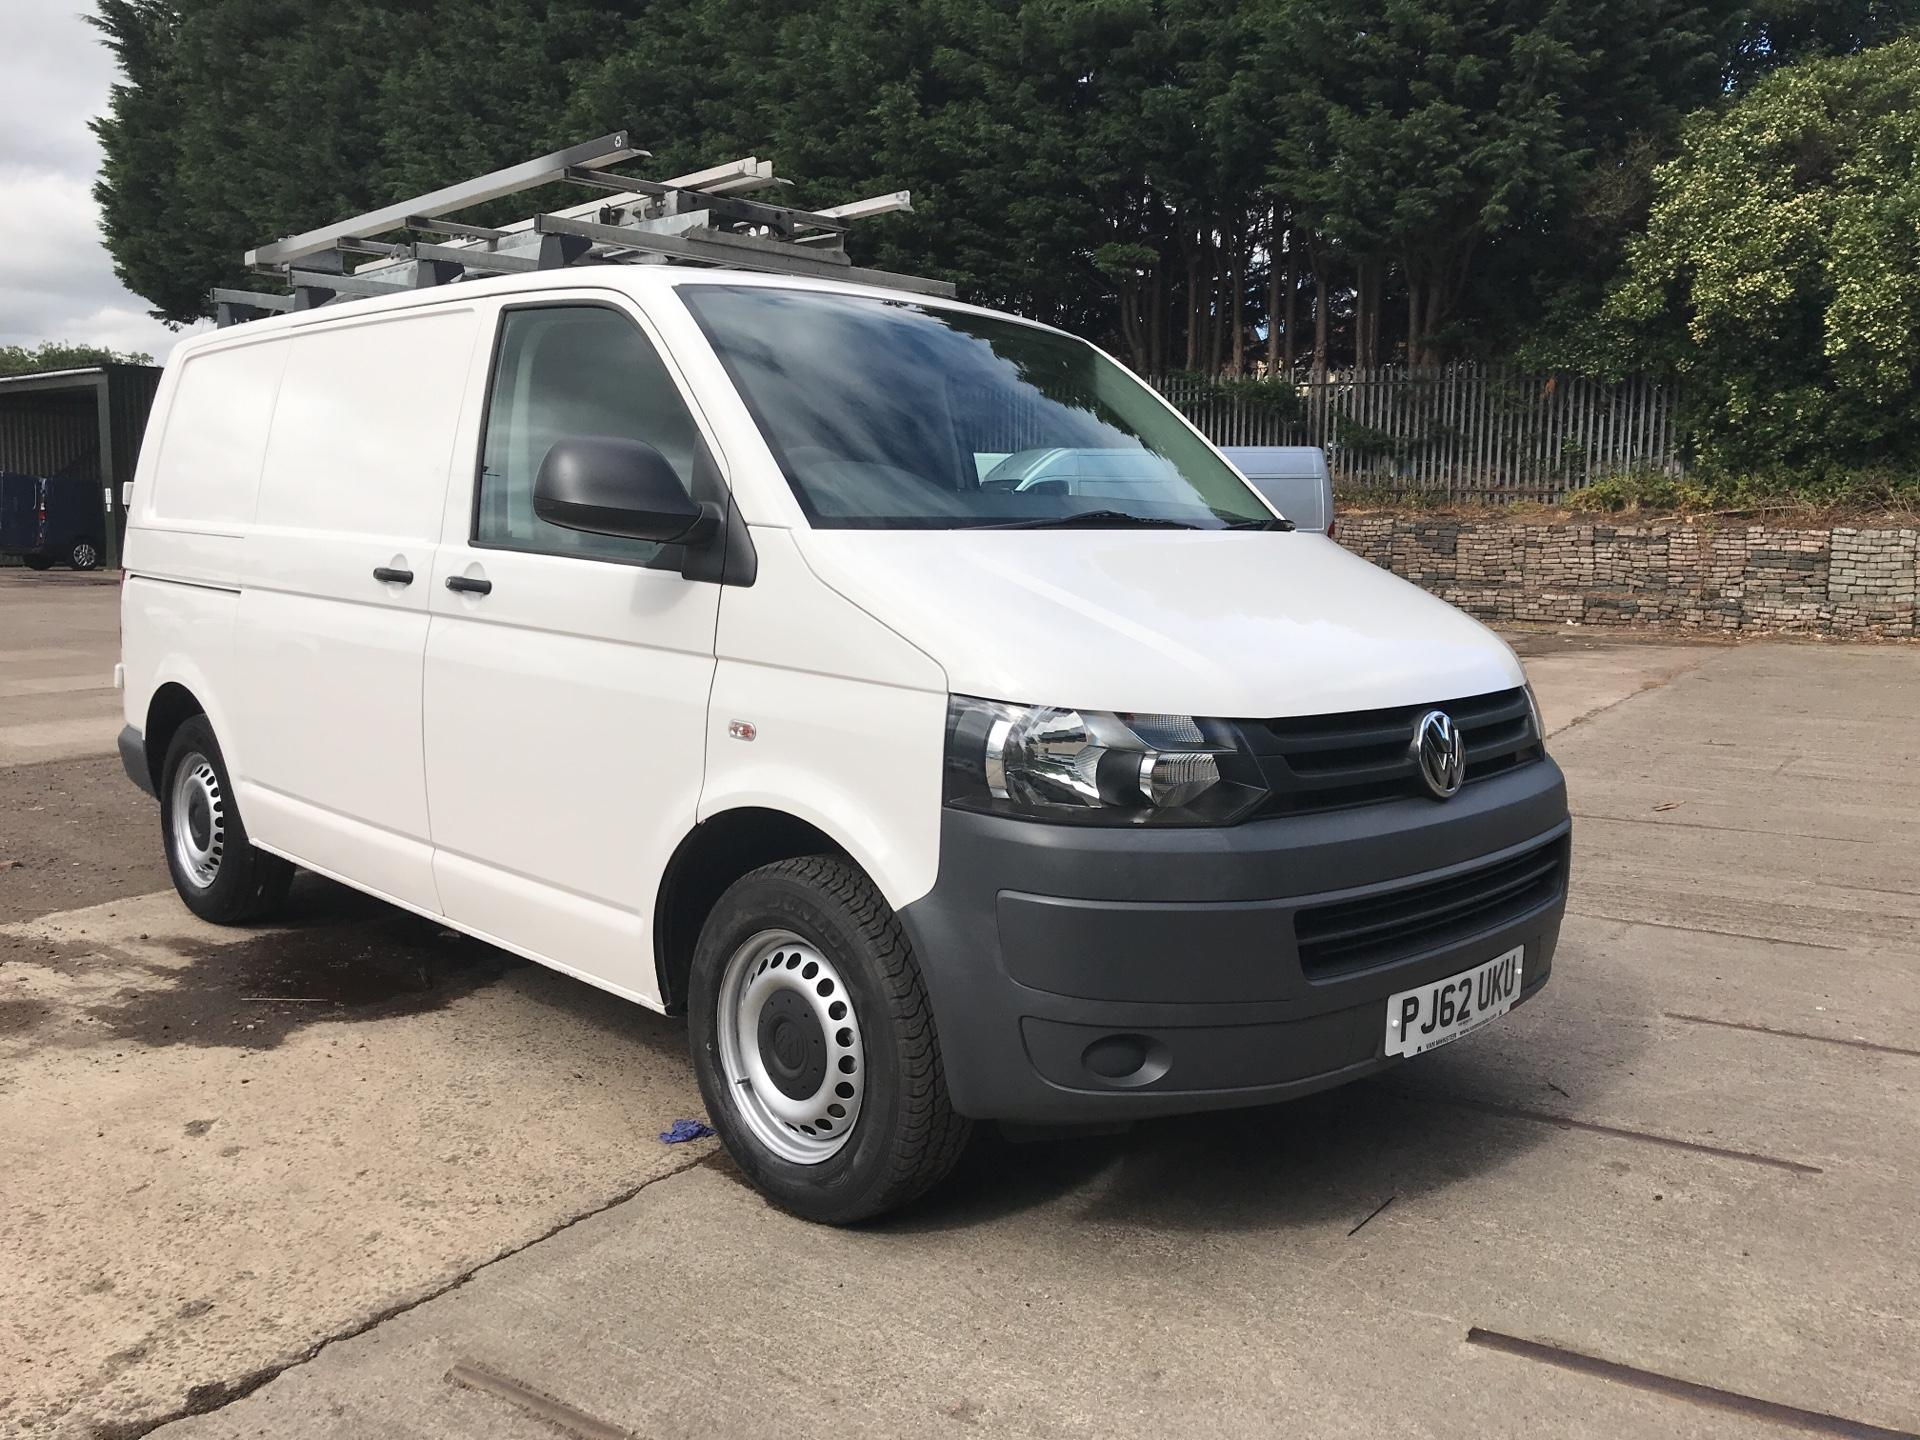 2013 Volkswagen Transporter 2.0 TDI BLUEMOTION TECH 84PS VAN AIR CON & SAT NAV (PJ62UKU)